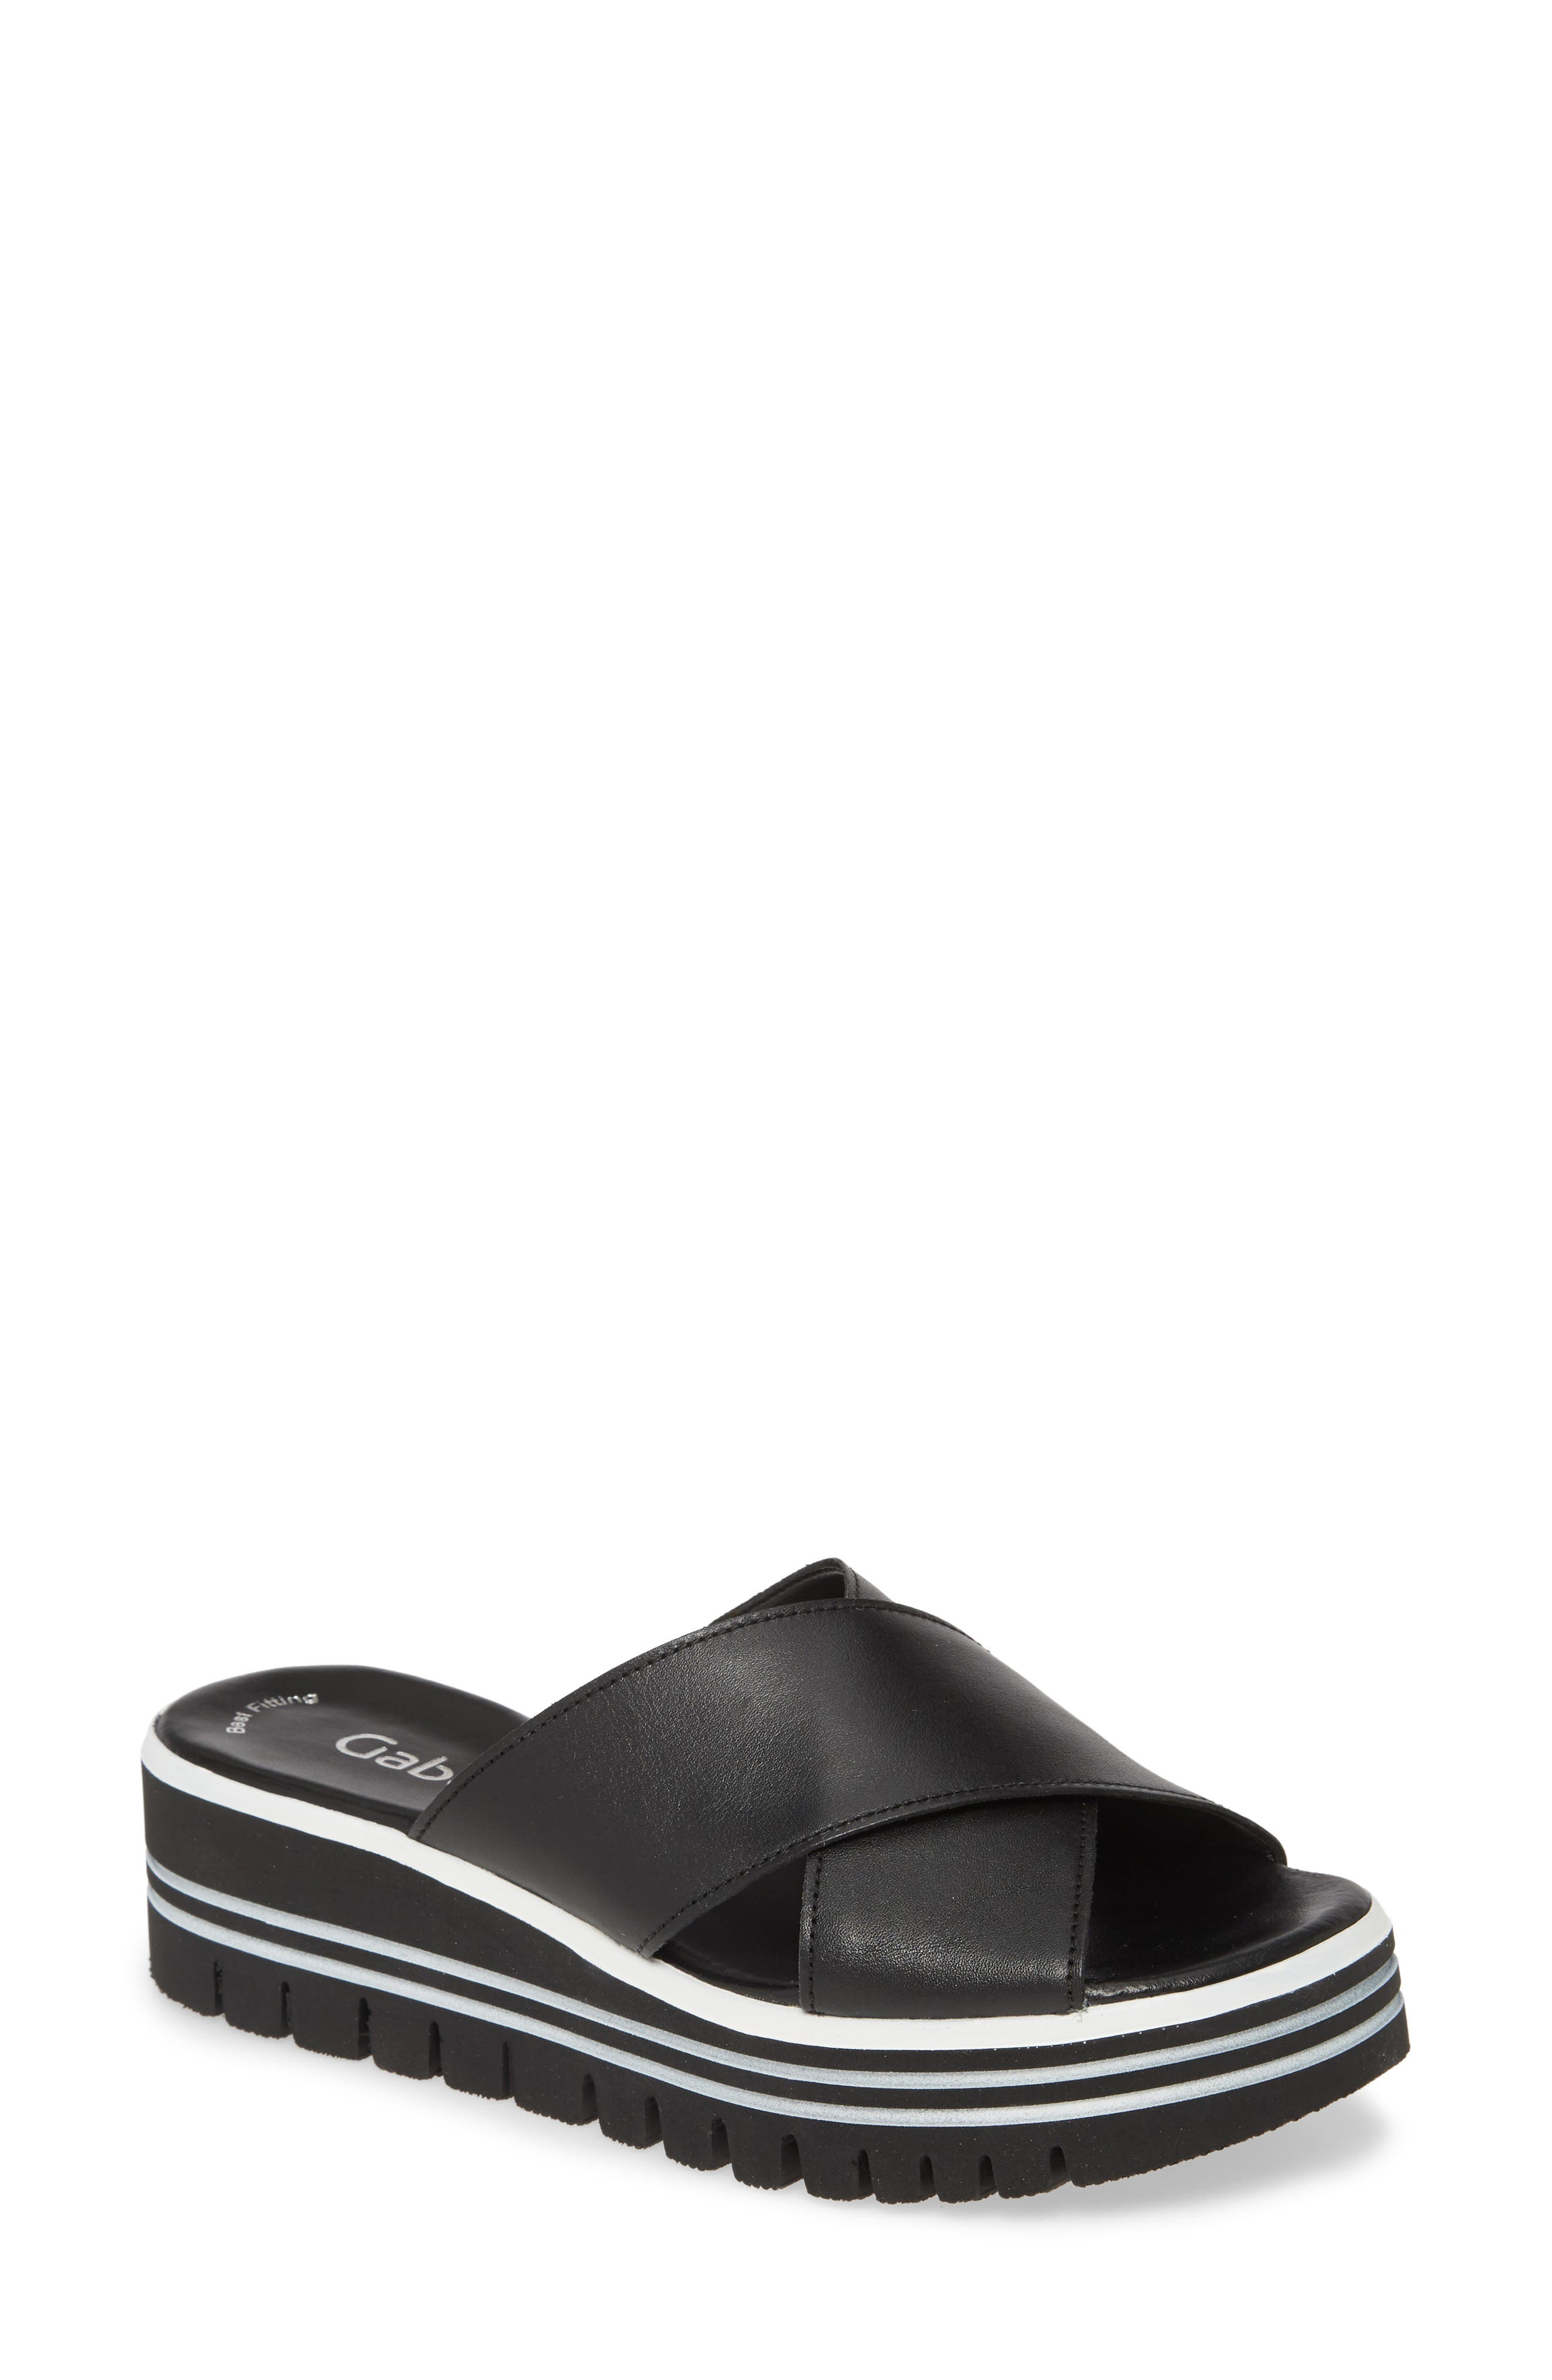 Wide crisscross straps define a casual-chic slide sandal elevated by a chunky lugged platform with a striking layered look. Style Name: Gabor Platform Slide Sandal (Women). Style Number: 6024617. Available in stores.